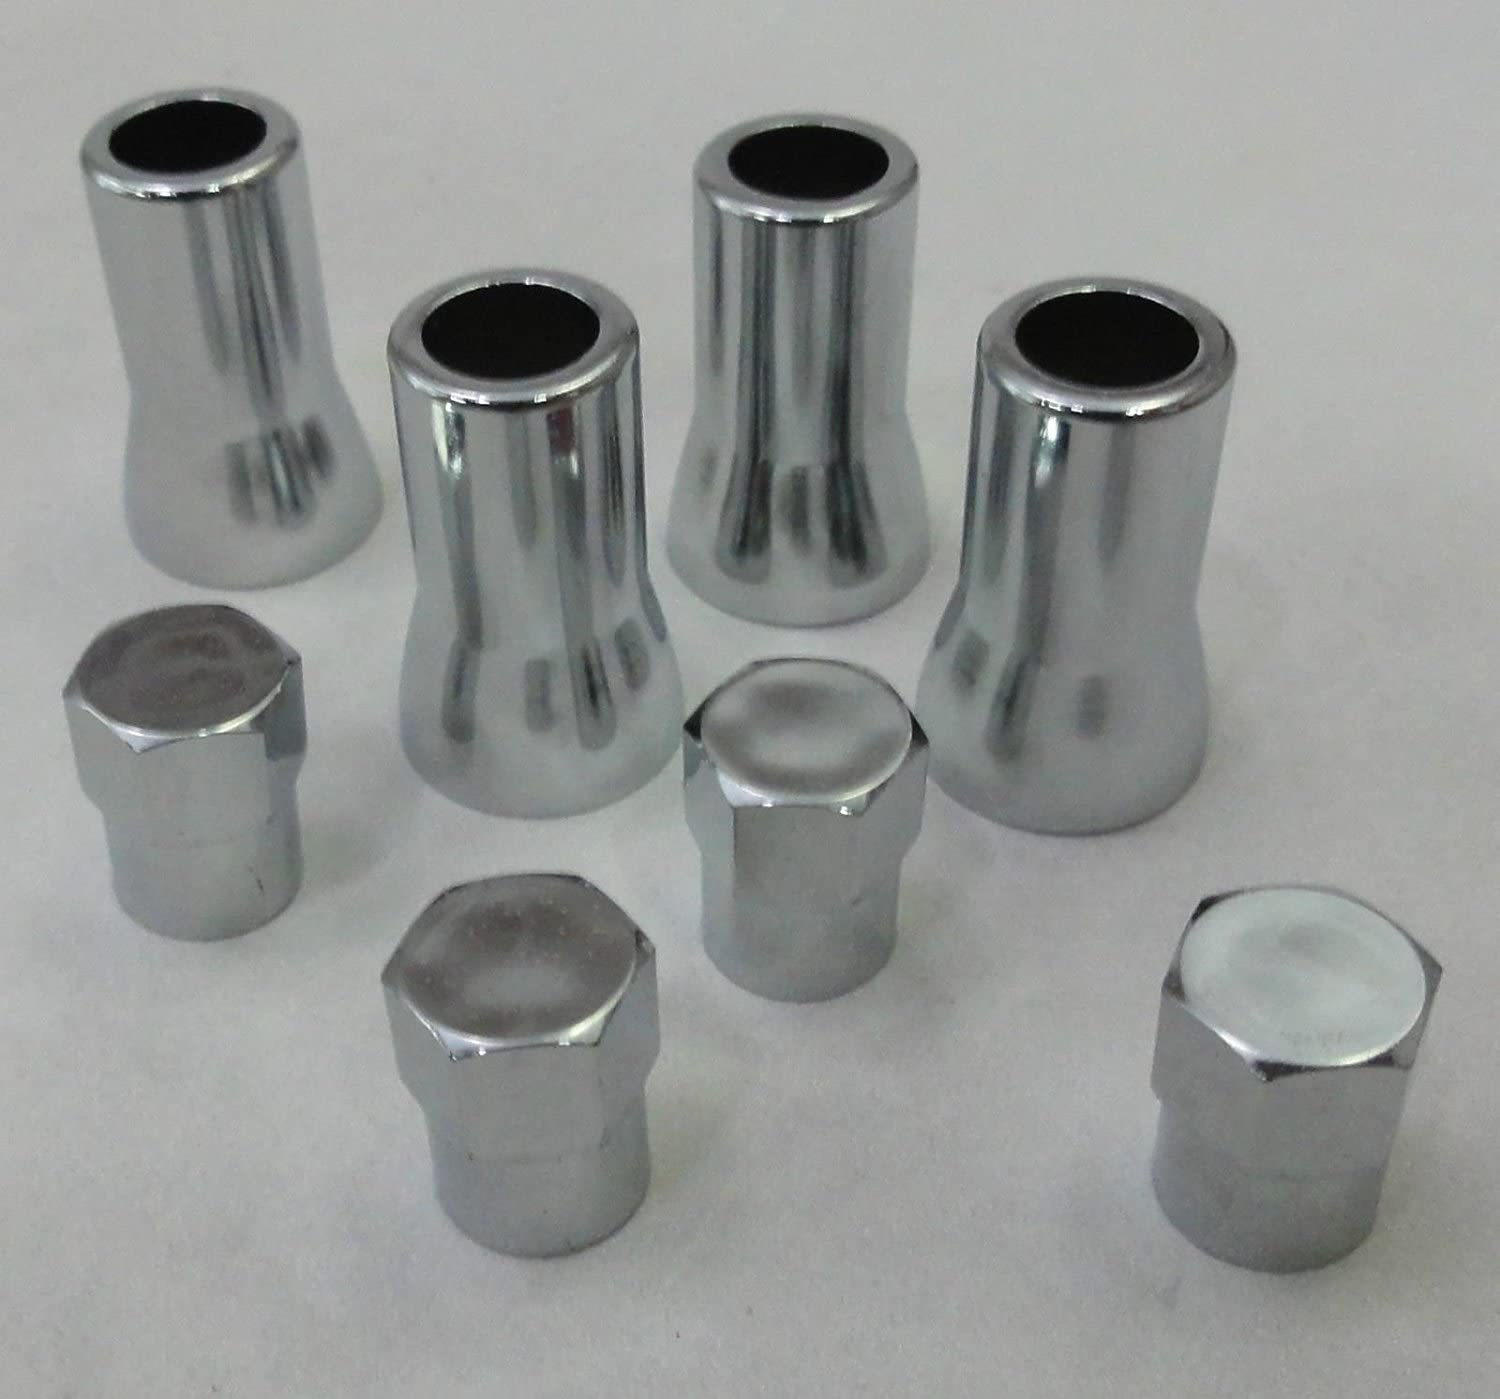 4* Tpms Tire Valve Stem Cap With Sleeve Cover Chrome For American Car Truck